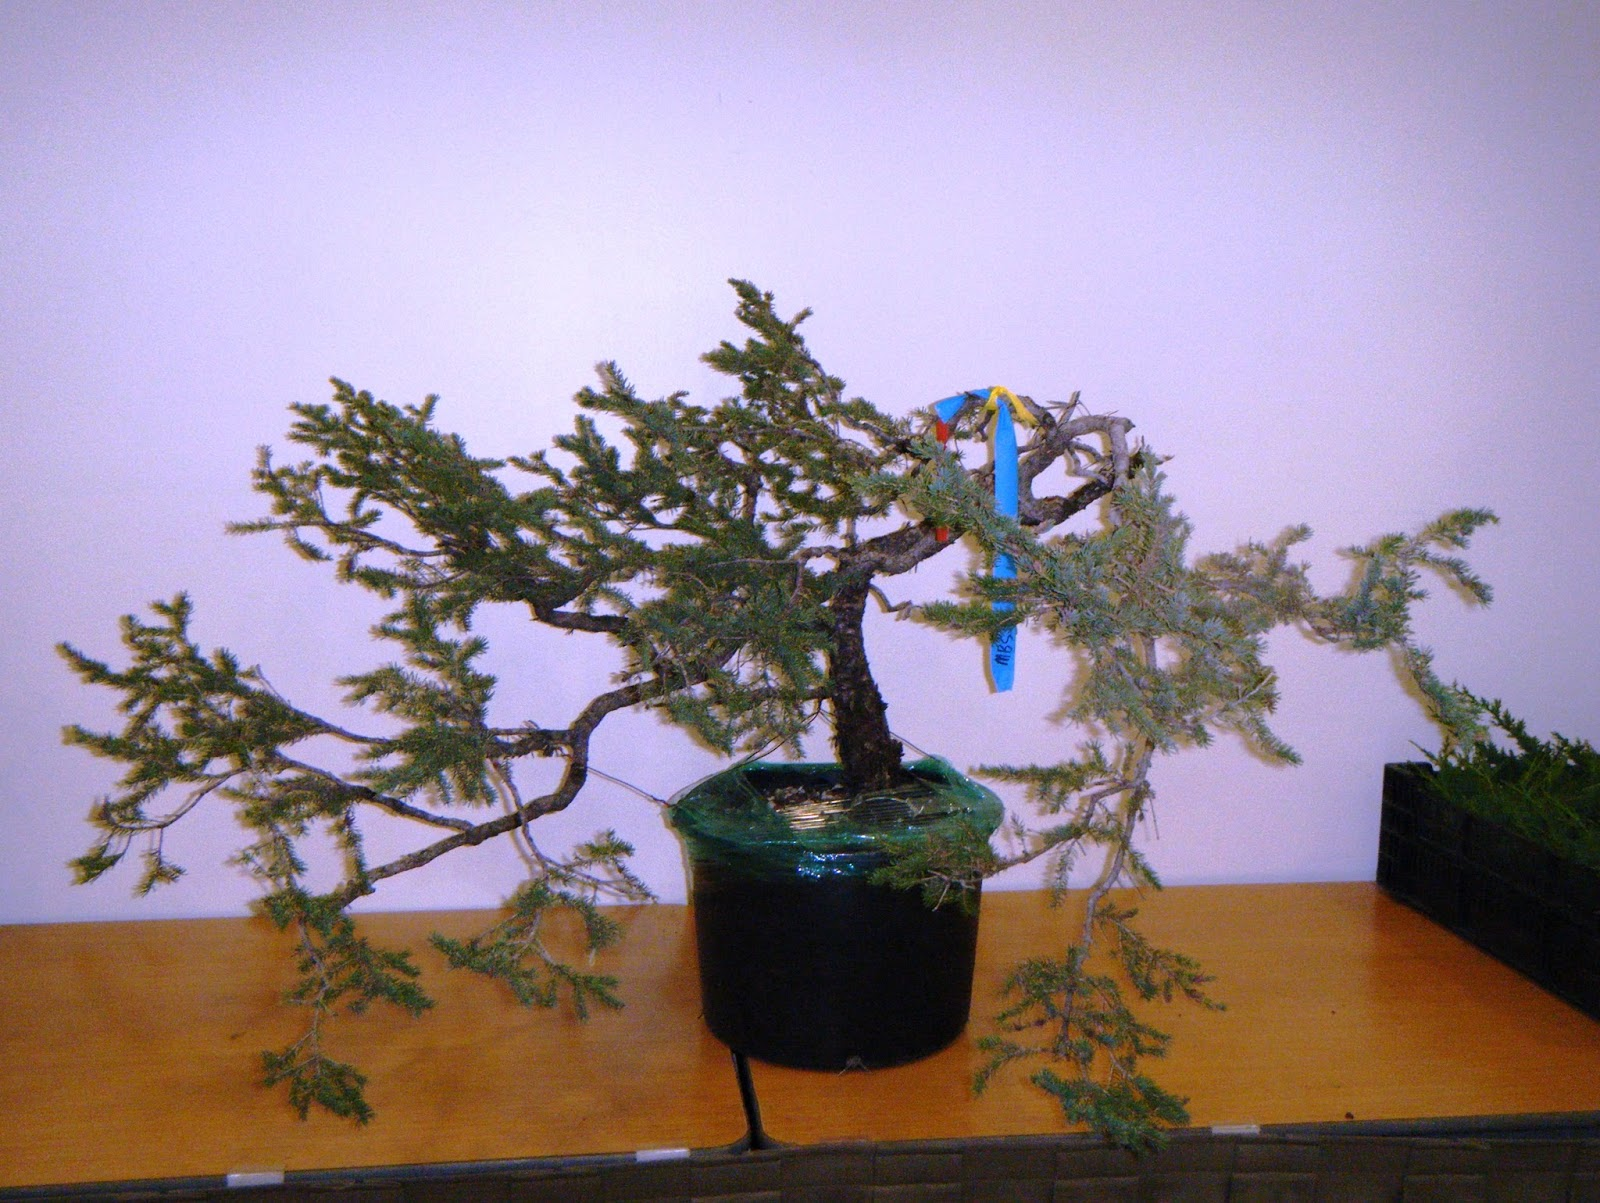 Bonsai In Hoosierland Spruce Unconventional Bonsai Design And - Black hills spruce bonsai trees